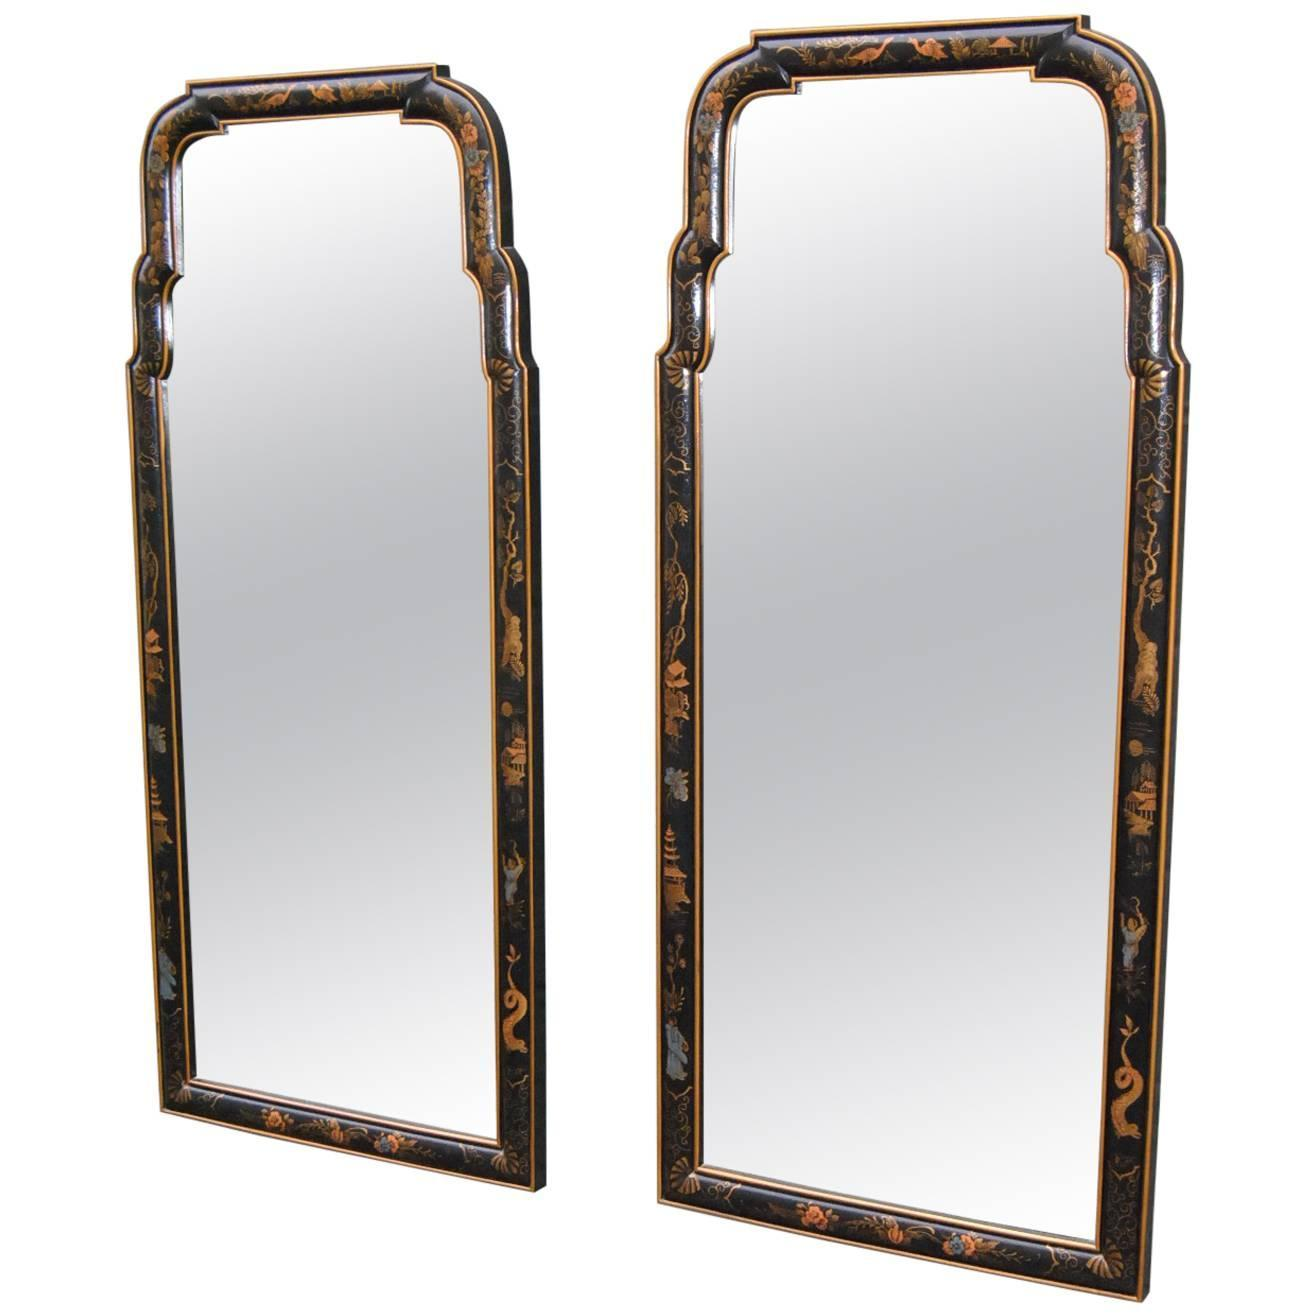 Asian Style Wall Mirrors Pair Of Asian Style Chinoiserie Drexel Mirrors Black With